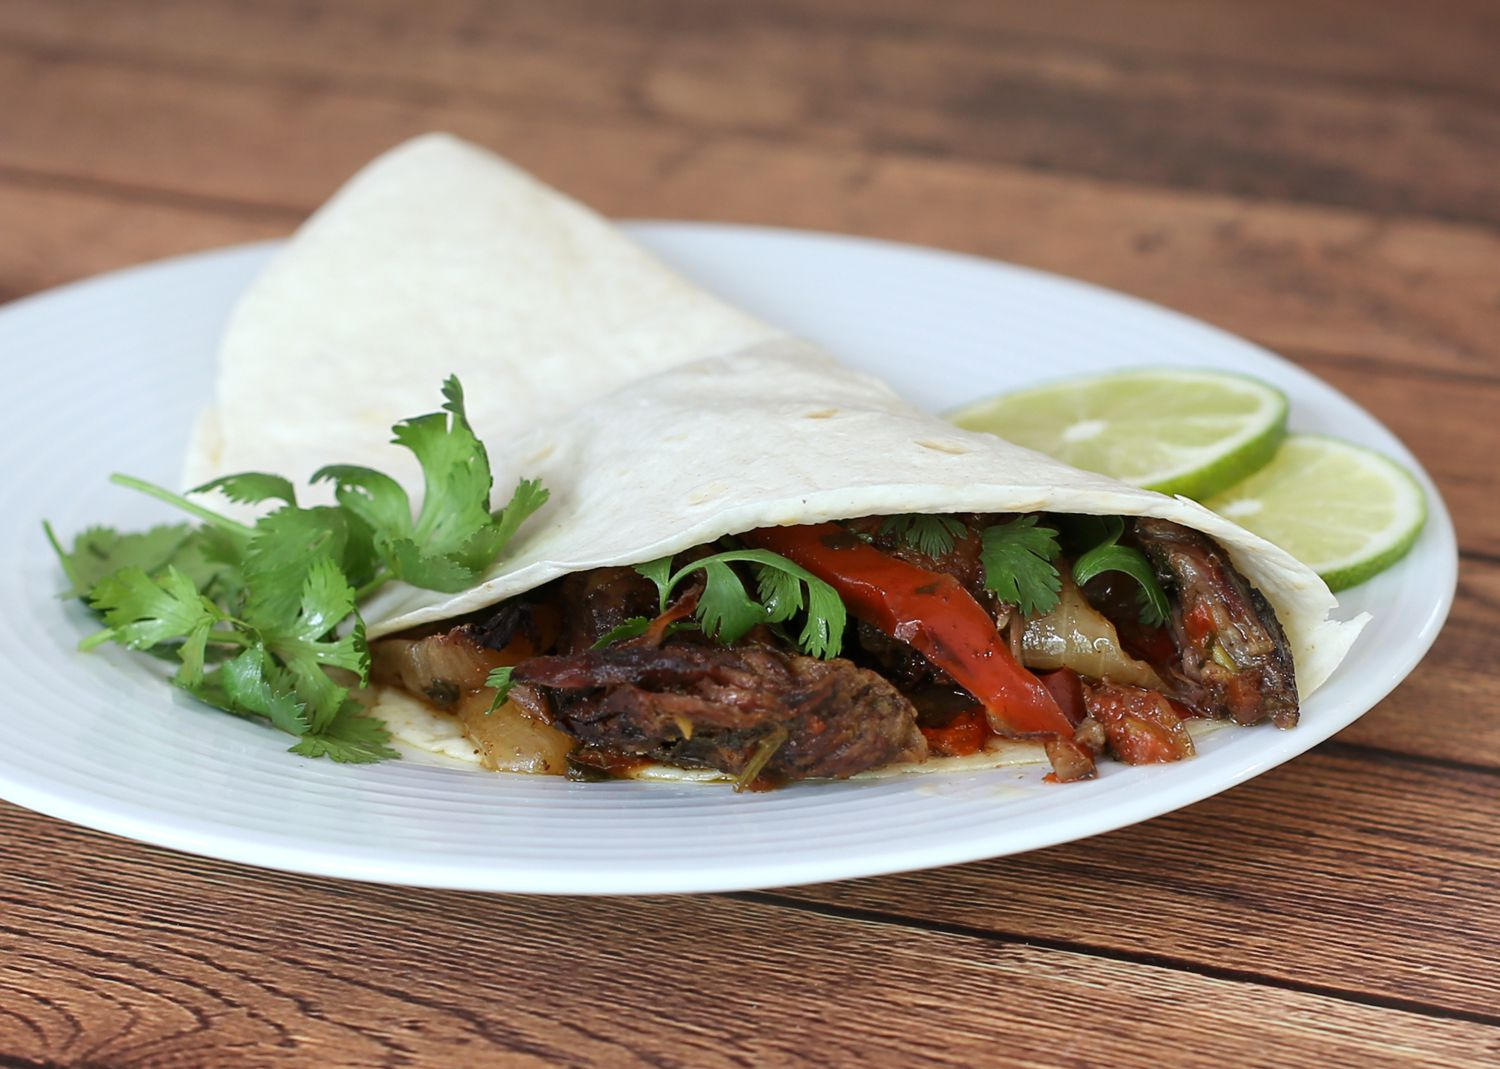 Crockpot Steak Fajitas Recipe